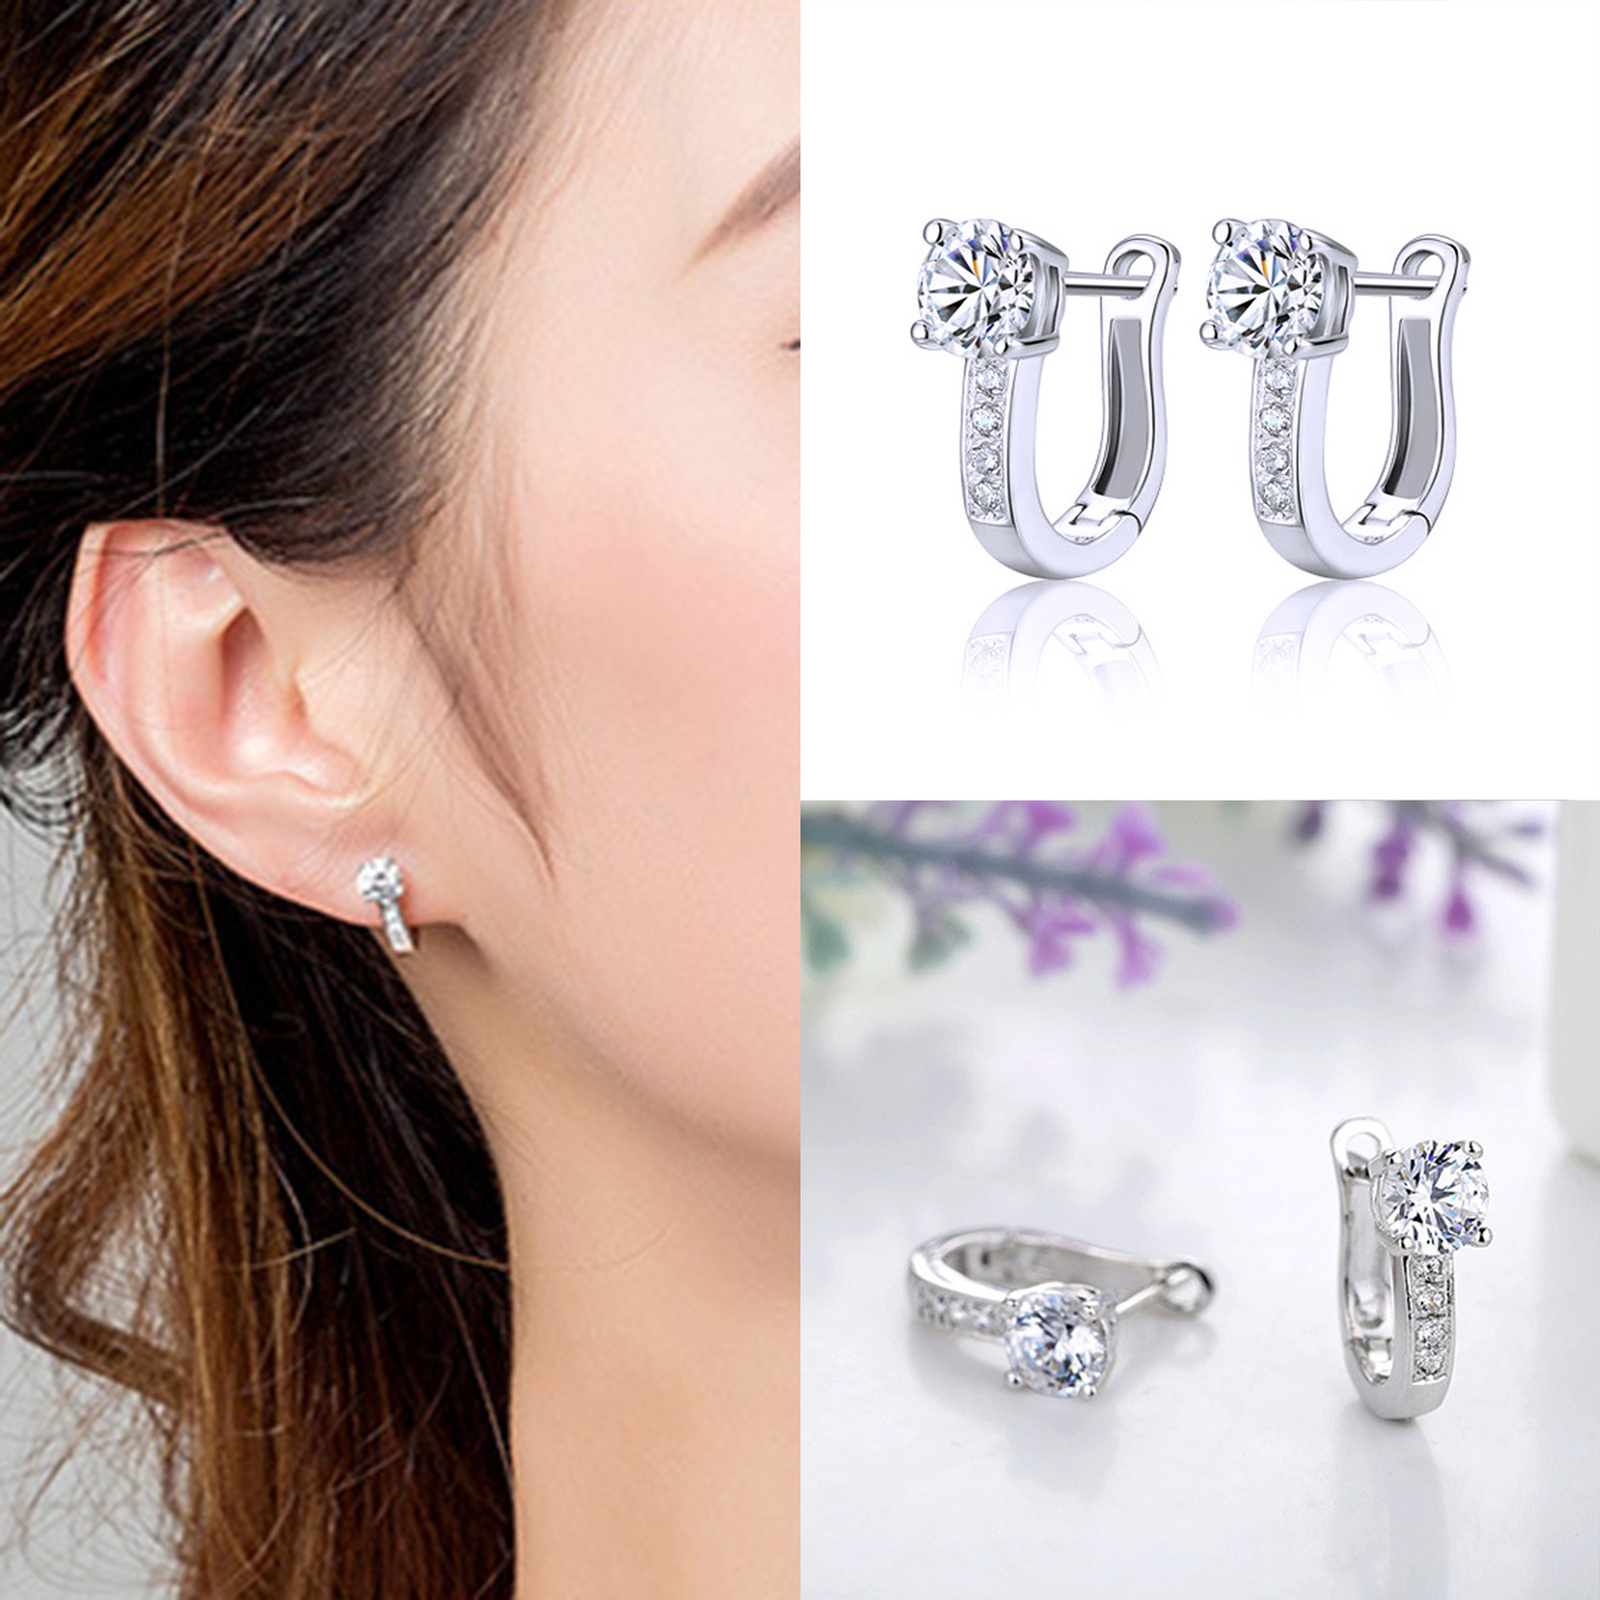 2018 New Arrival Korean Style Best Friends Silver Color Earrings U Shape Stud image 2